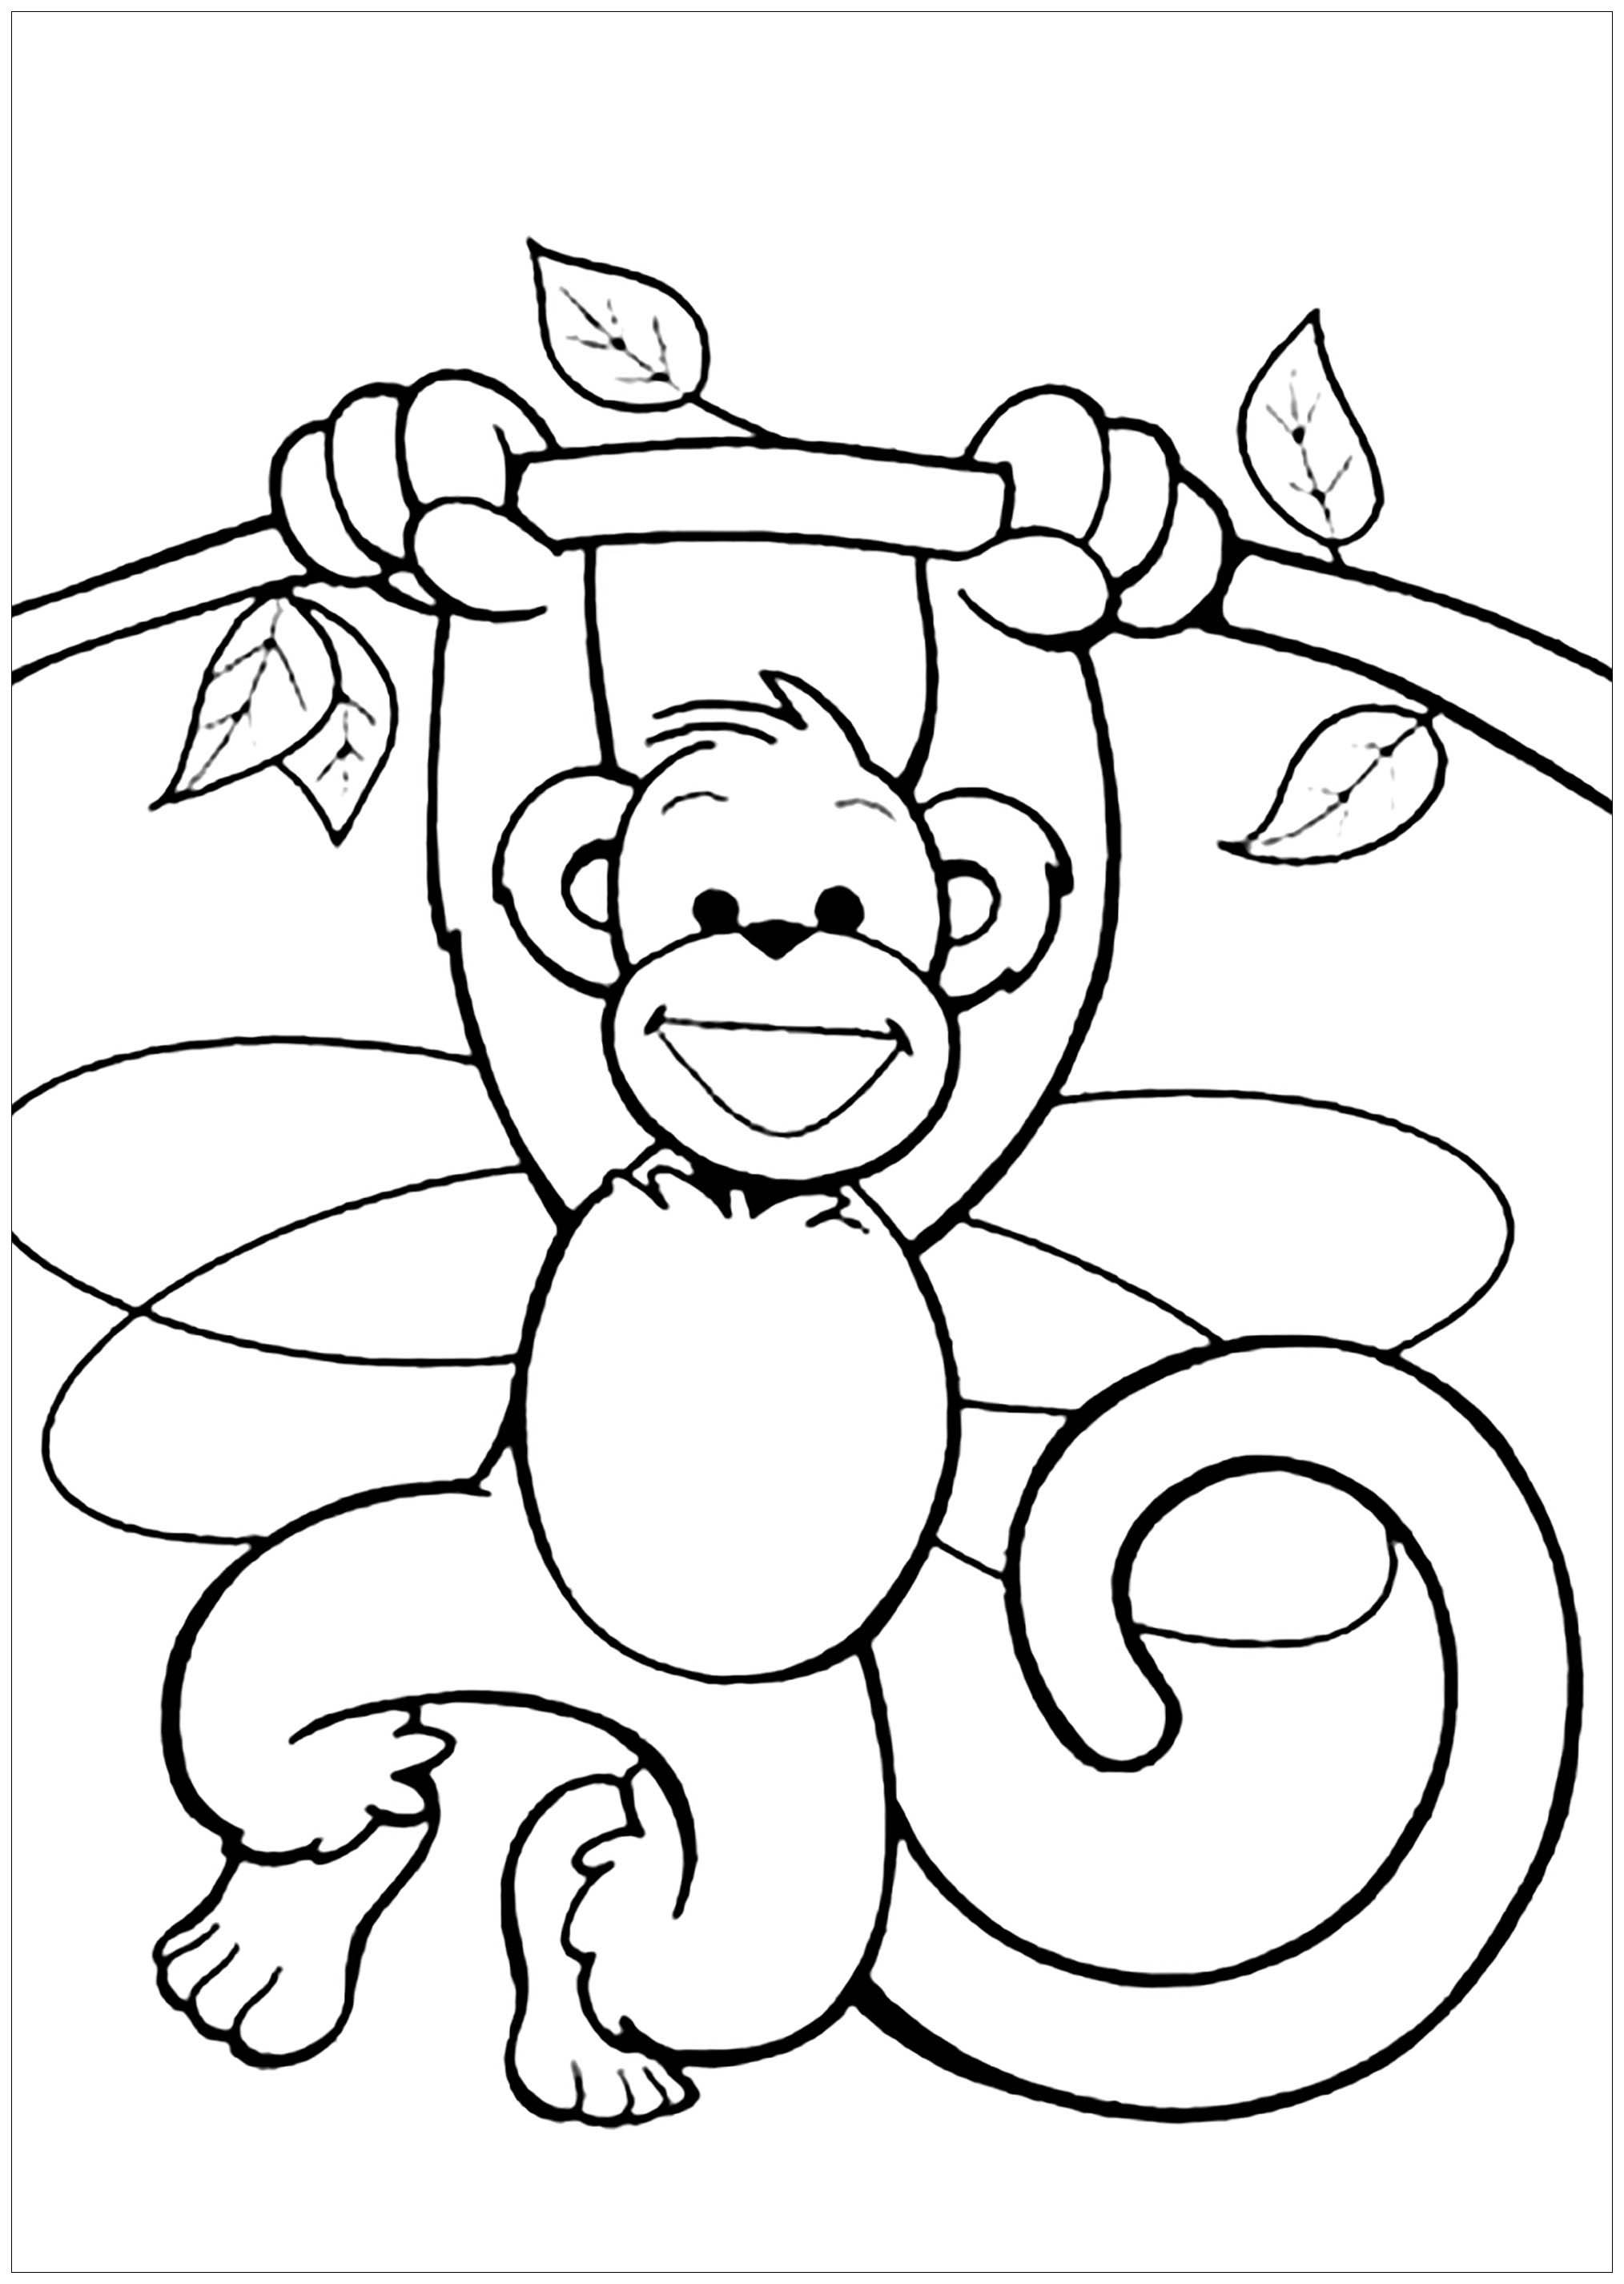 free coloring pages for kids free printable puppies coloring pages for kids free kids pages for coloring